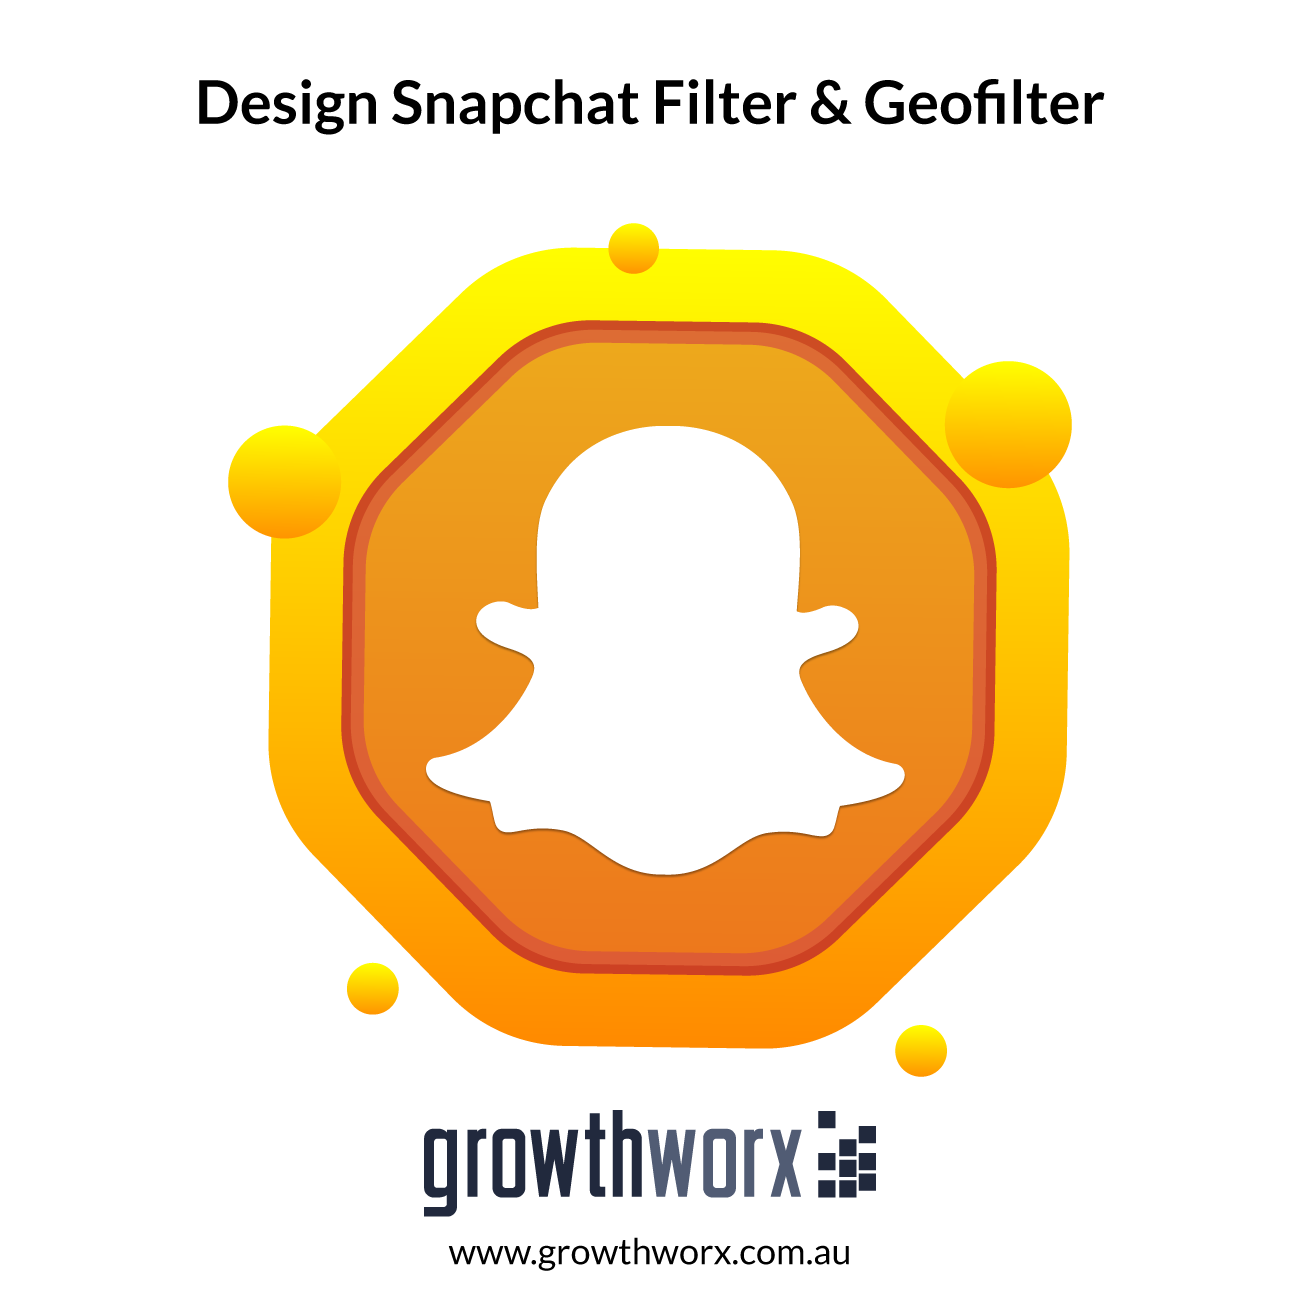 We will design a snapchat filter and geofilter for you 1